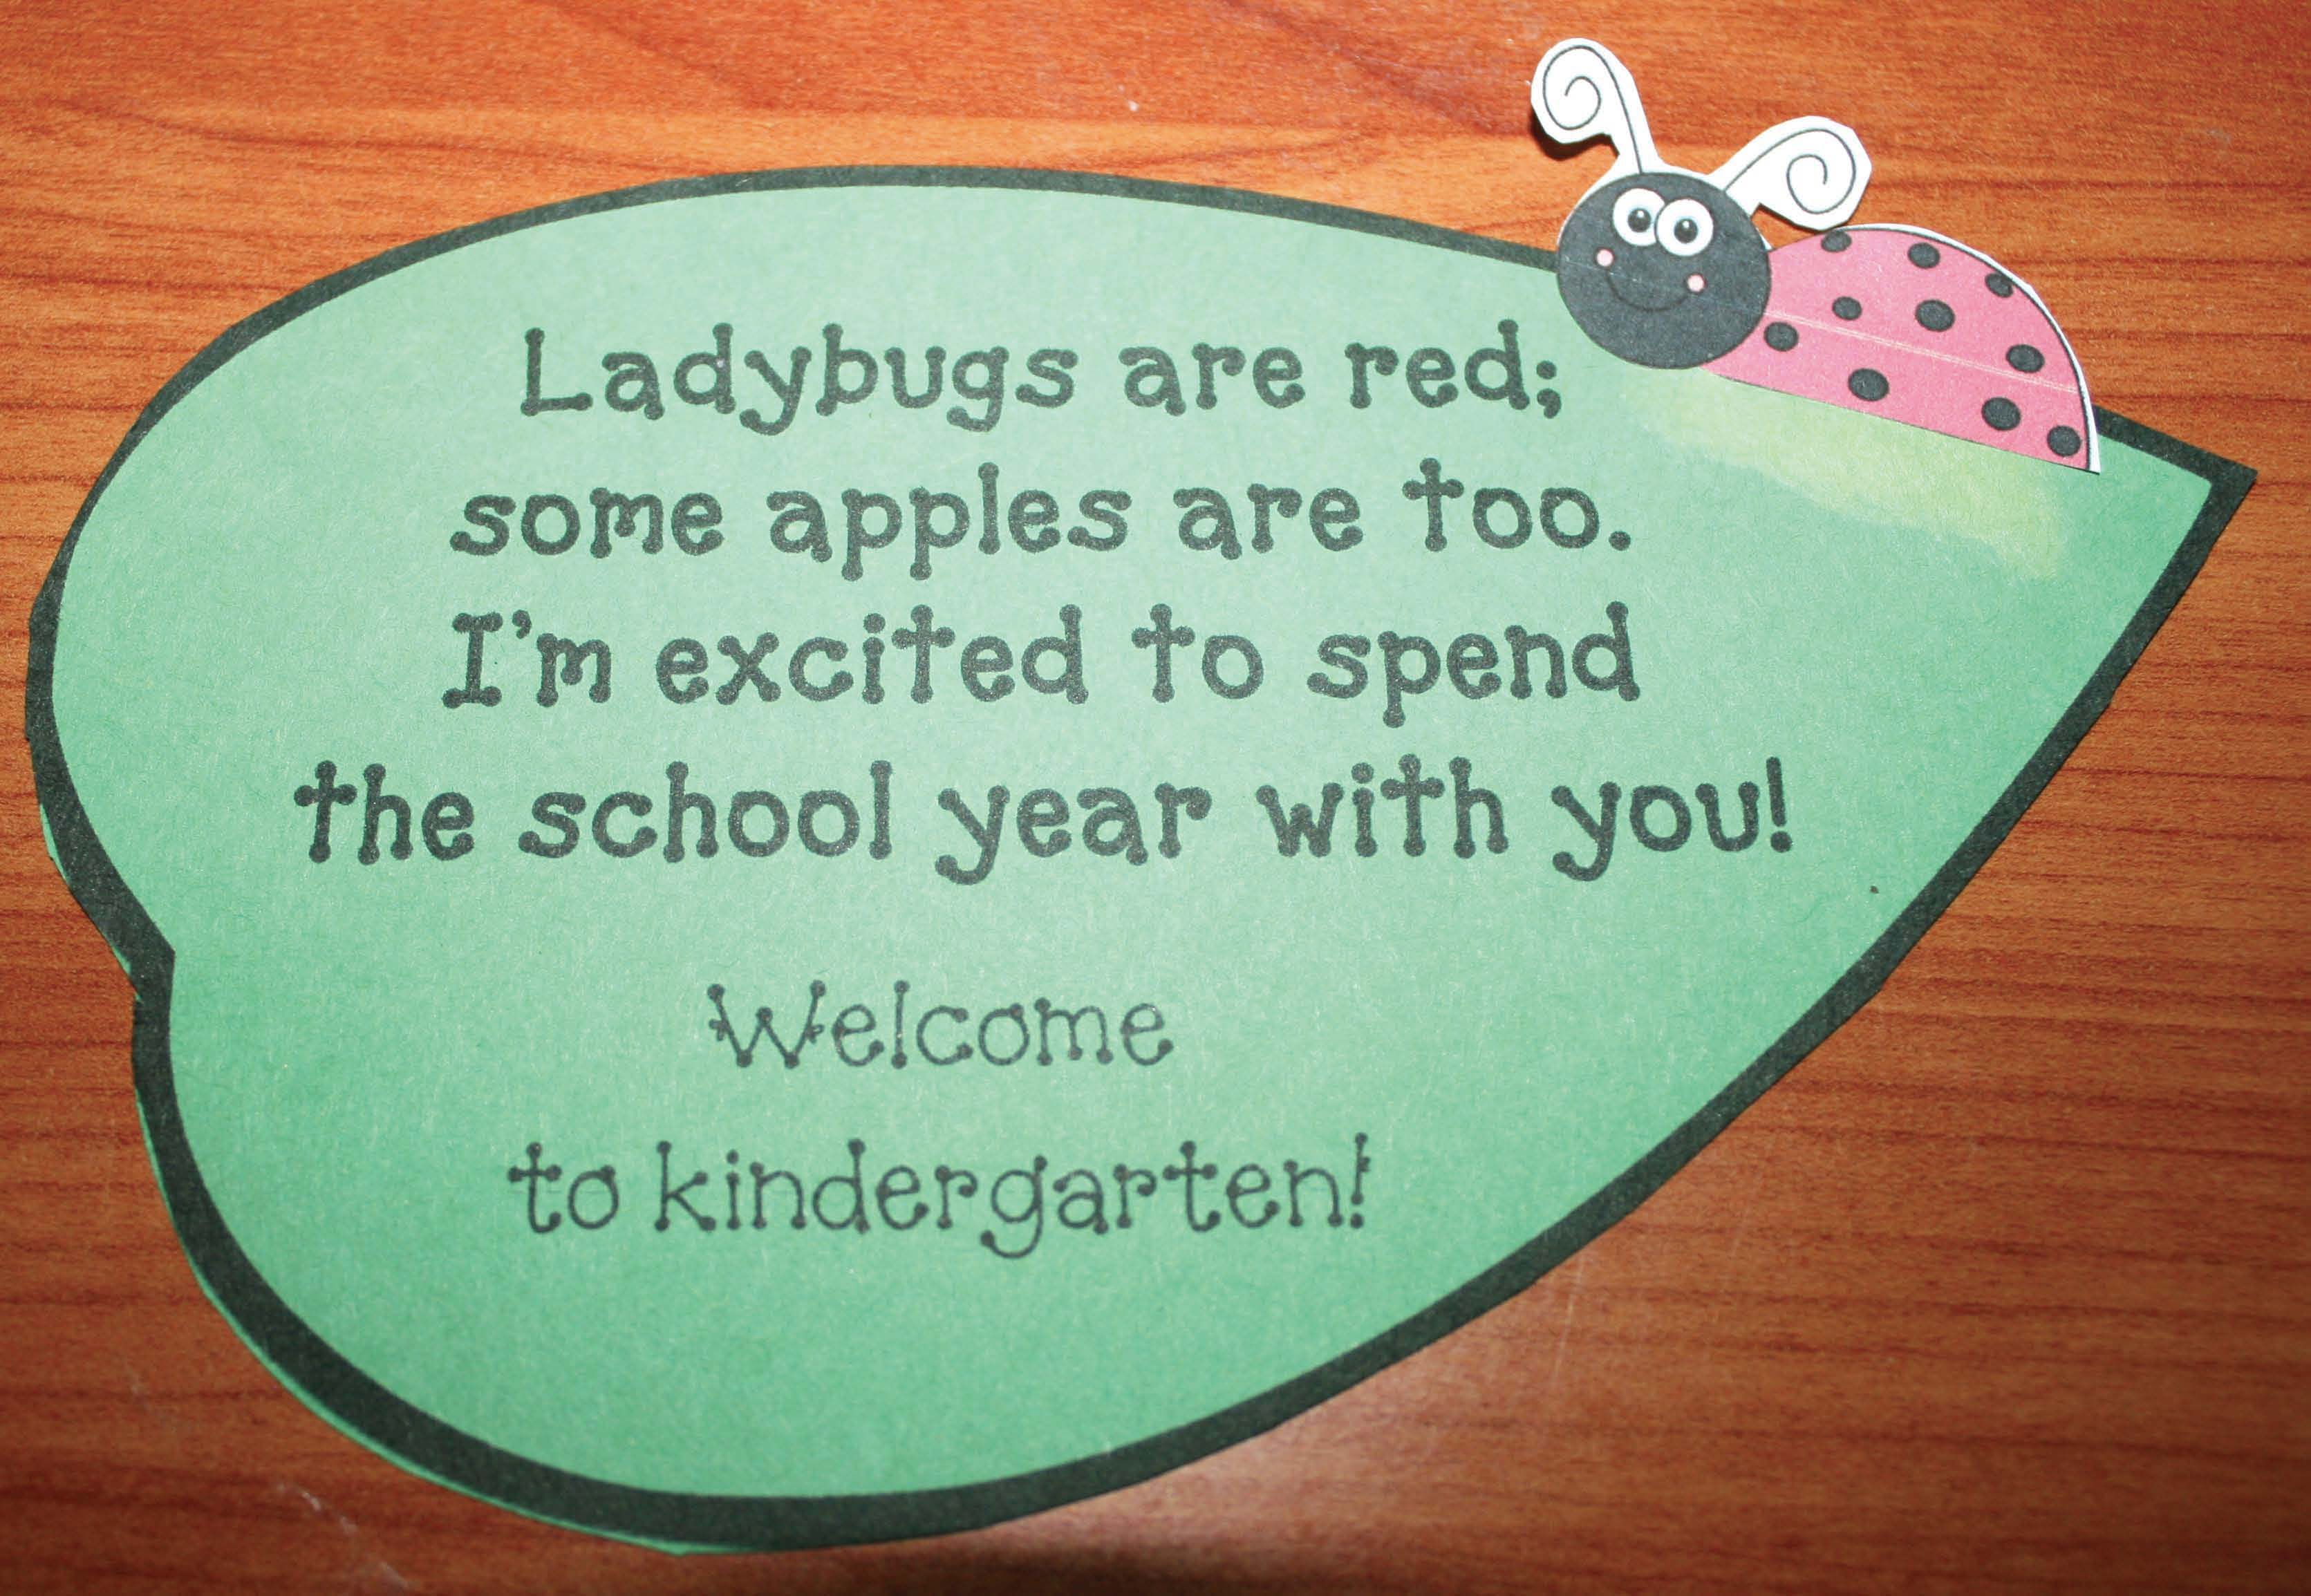 apple snacks, first day of school gifts, first day of school treats, first day of school ideas, ideas for the first day of school, 1st day treats, treat bags, ladybug stickers, apple poems